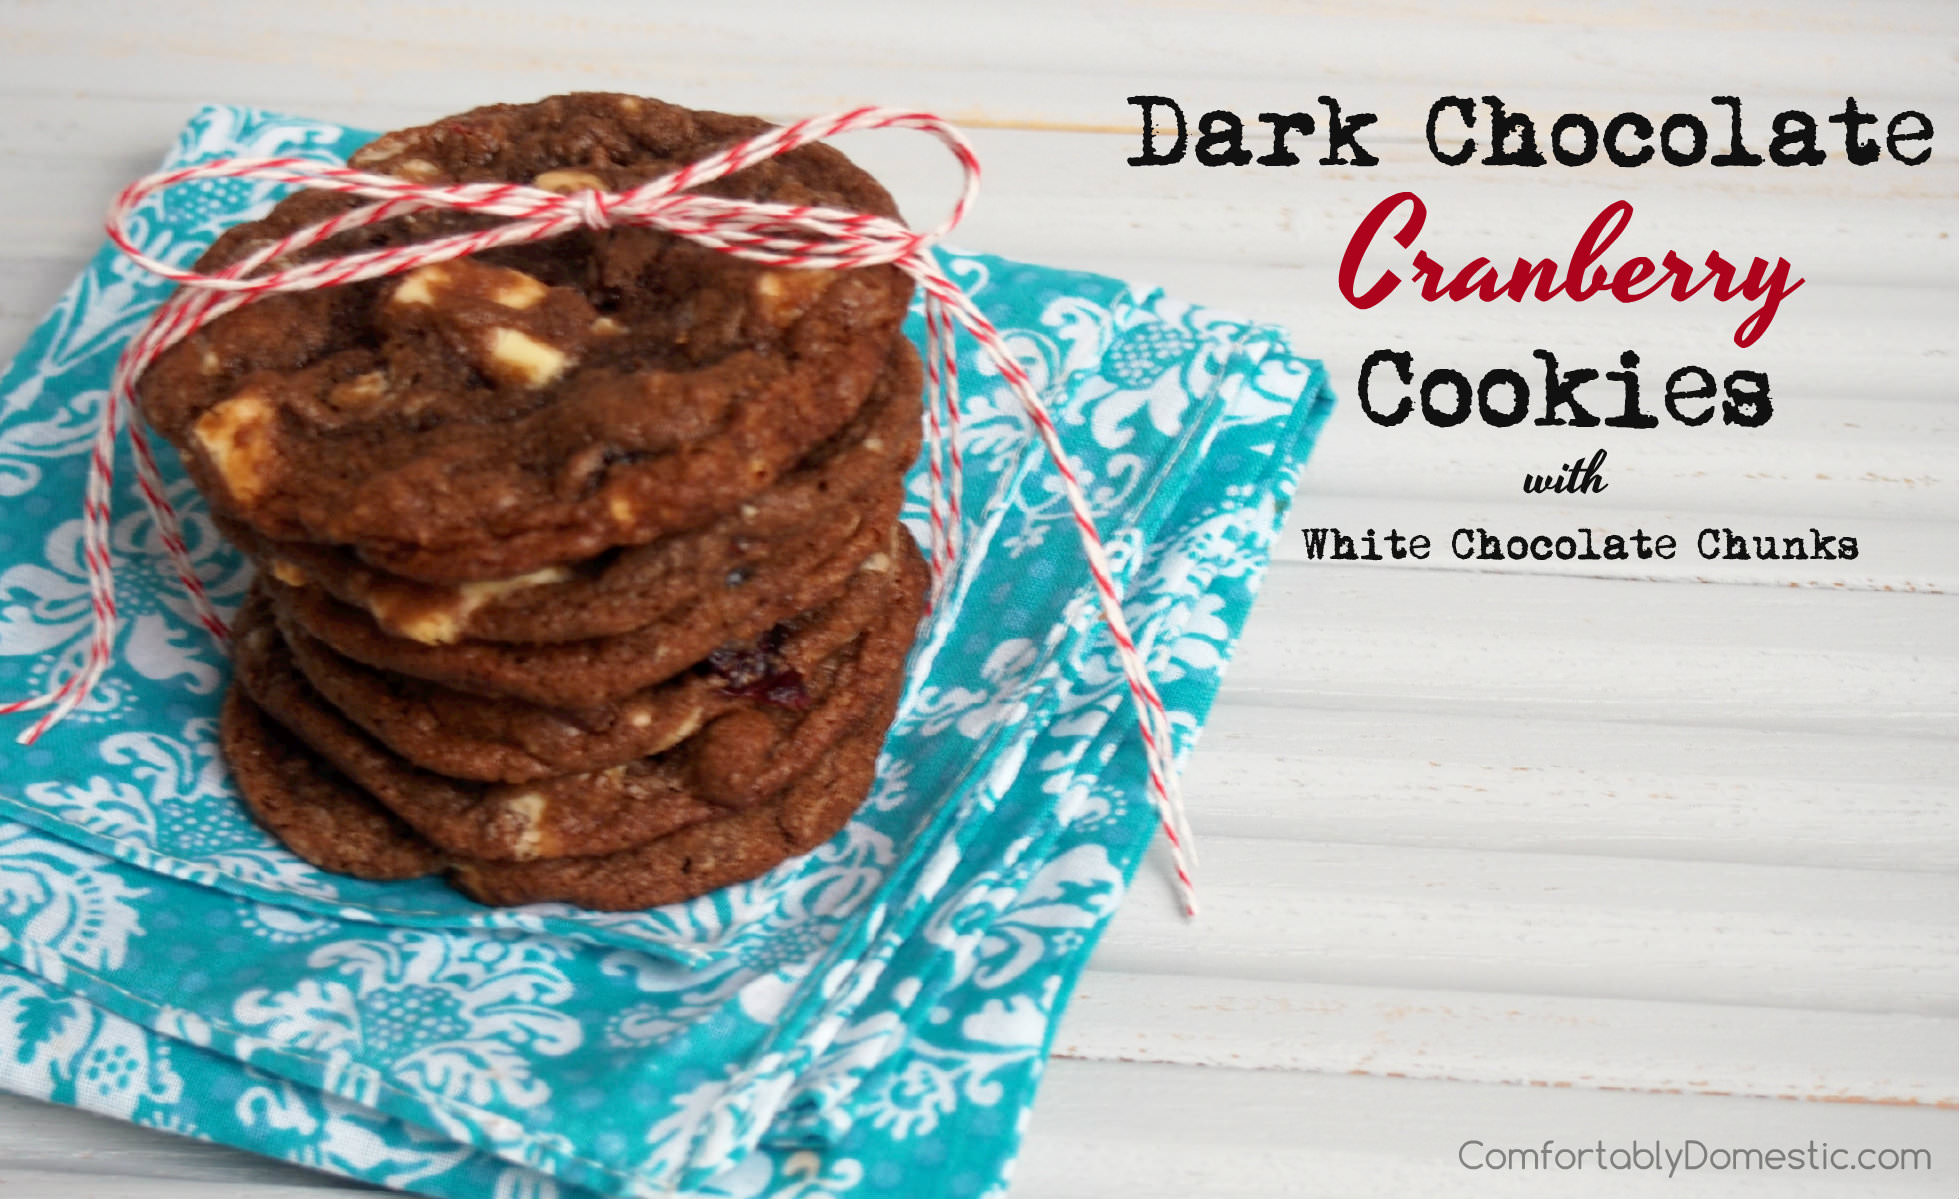 Dark Chocolate Cranberry Cookies with White Chocolate Chunks | ComfortablyDomestic.com are a rich chocolate cookie that crisp yet soft, loaded with tangy cranberries and smooth white chocolate.